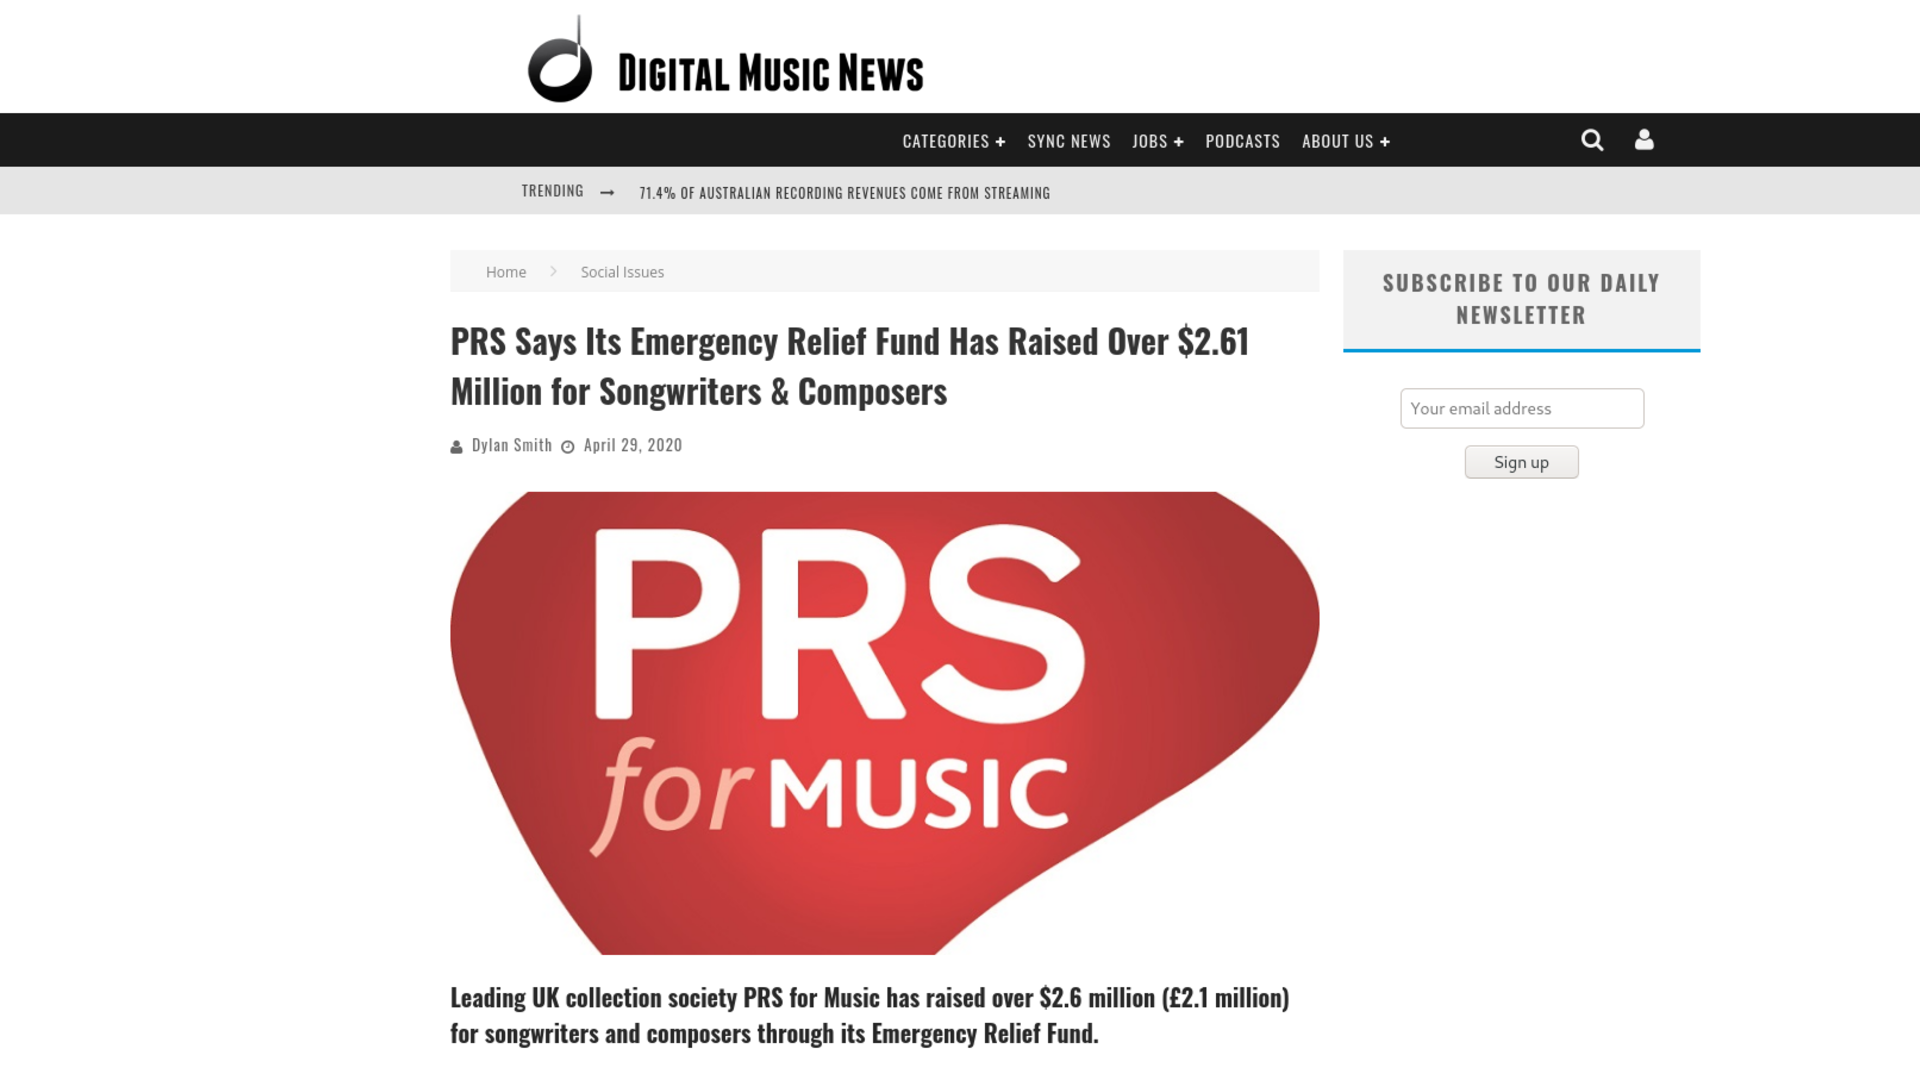 Fairness Rocks News PRS Says Its Emergency Relief Fund Has Raised Over $2.61 Million for Songwriters & Composers